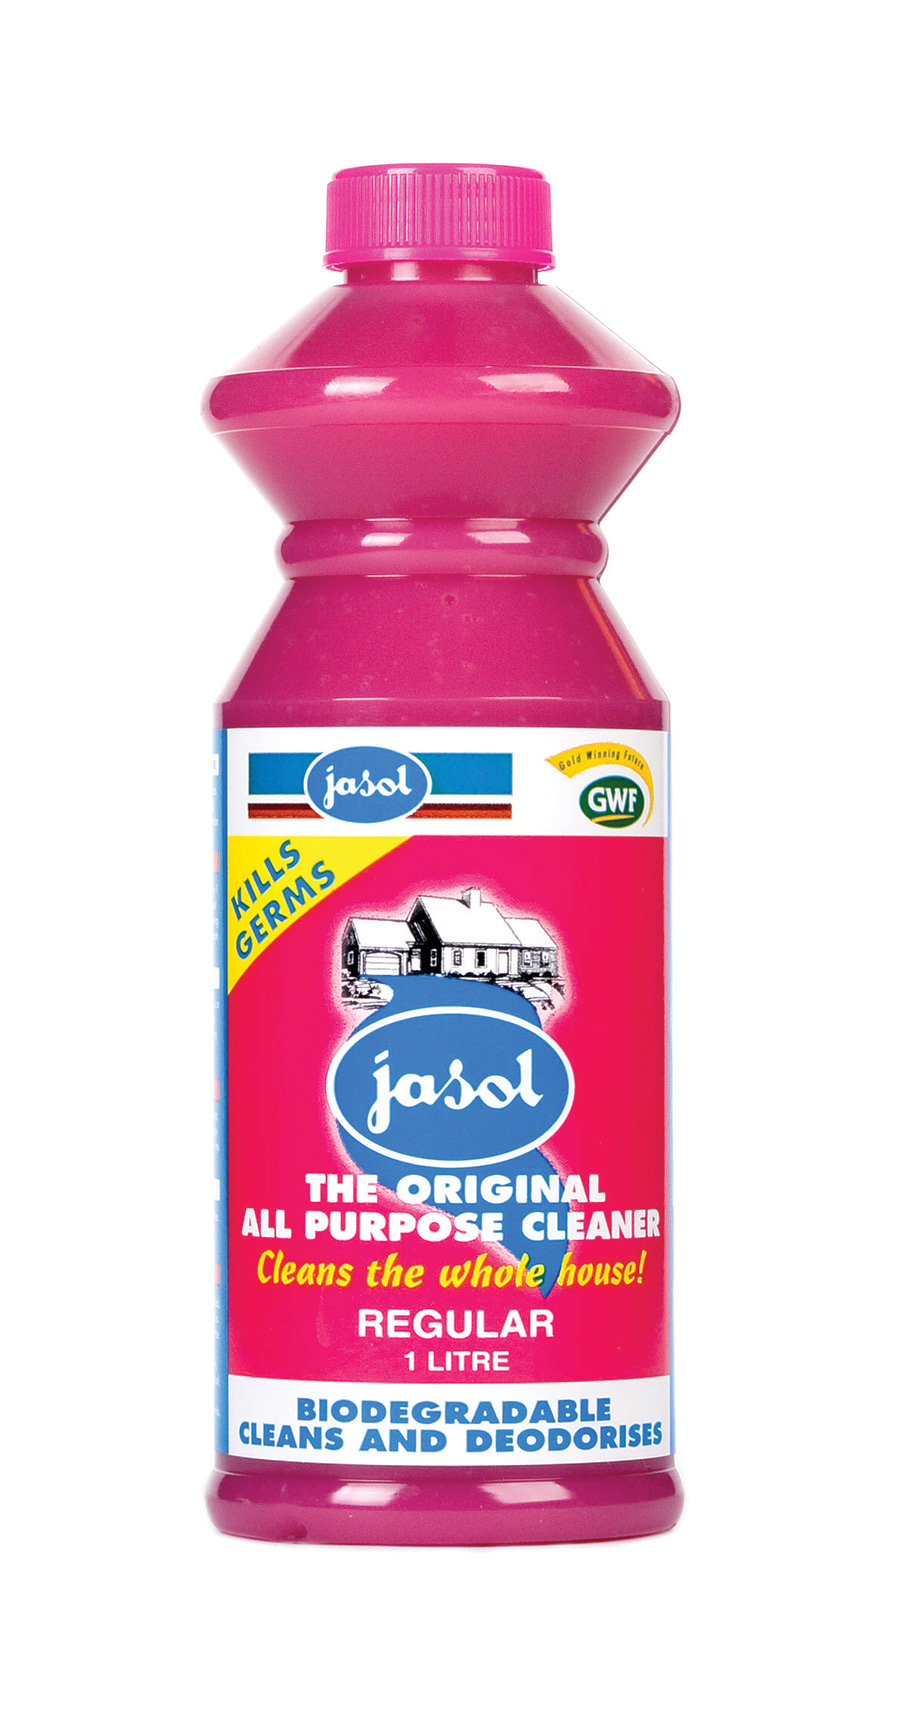 1000150—Regular-Cleaner—1L